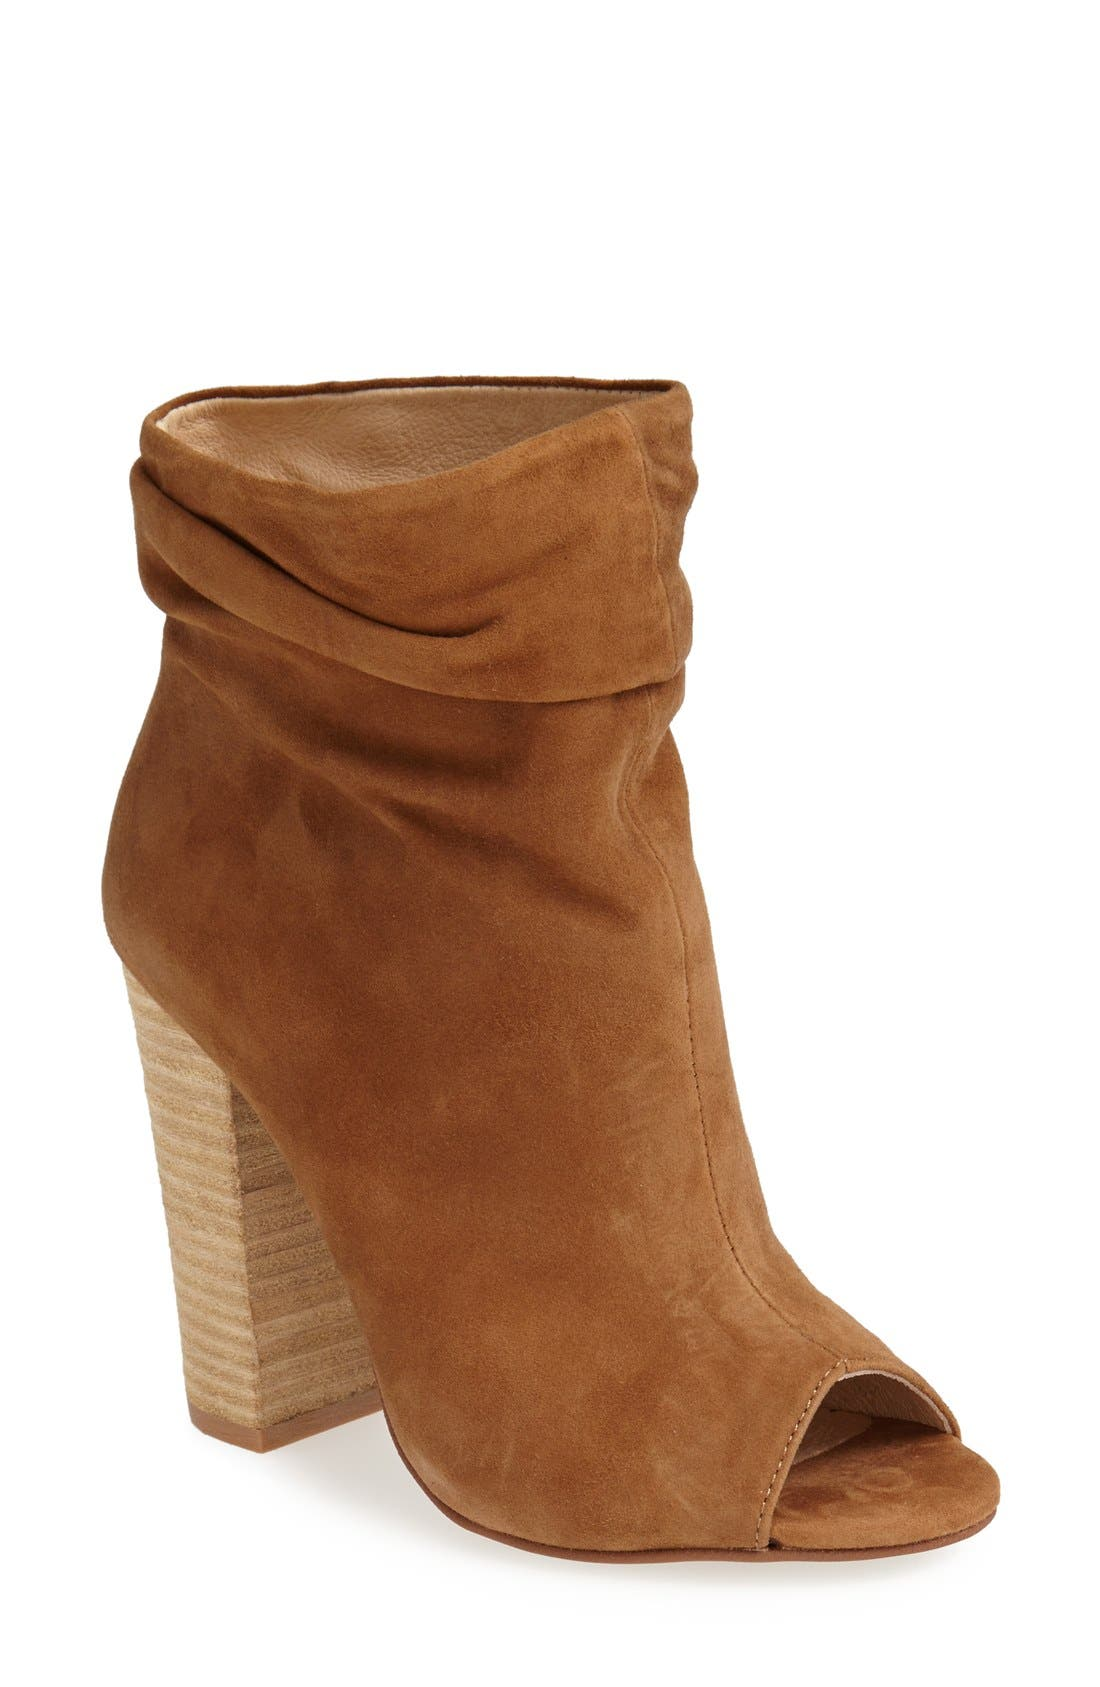 'Laurel' Peep Toe Bootie,                         Main,                         color, Dark Camel